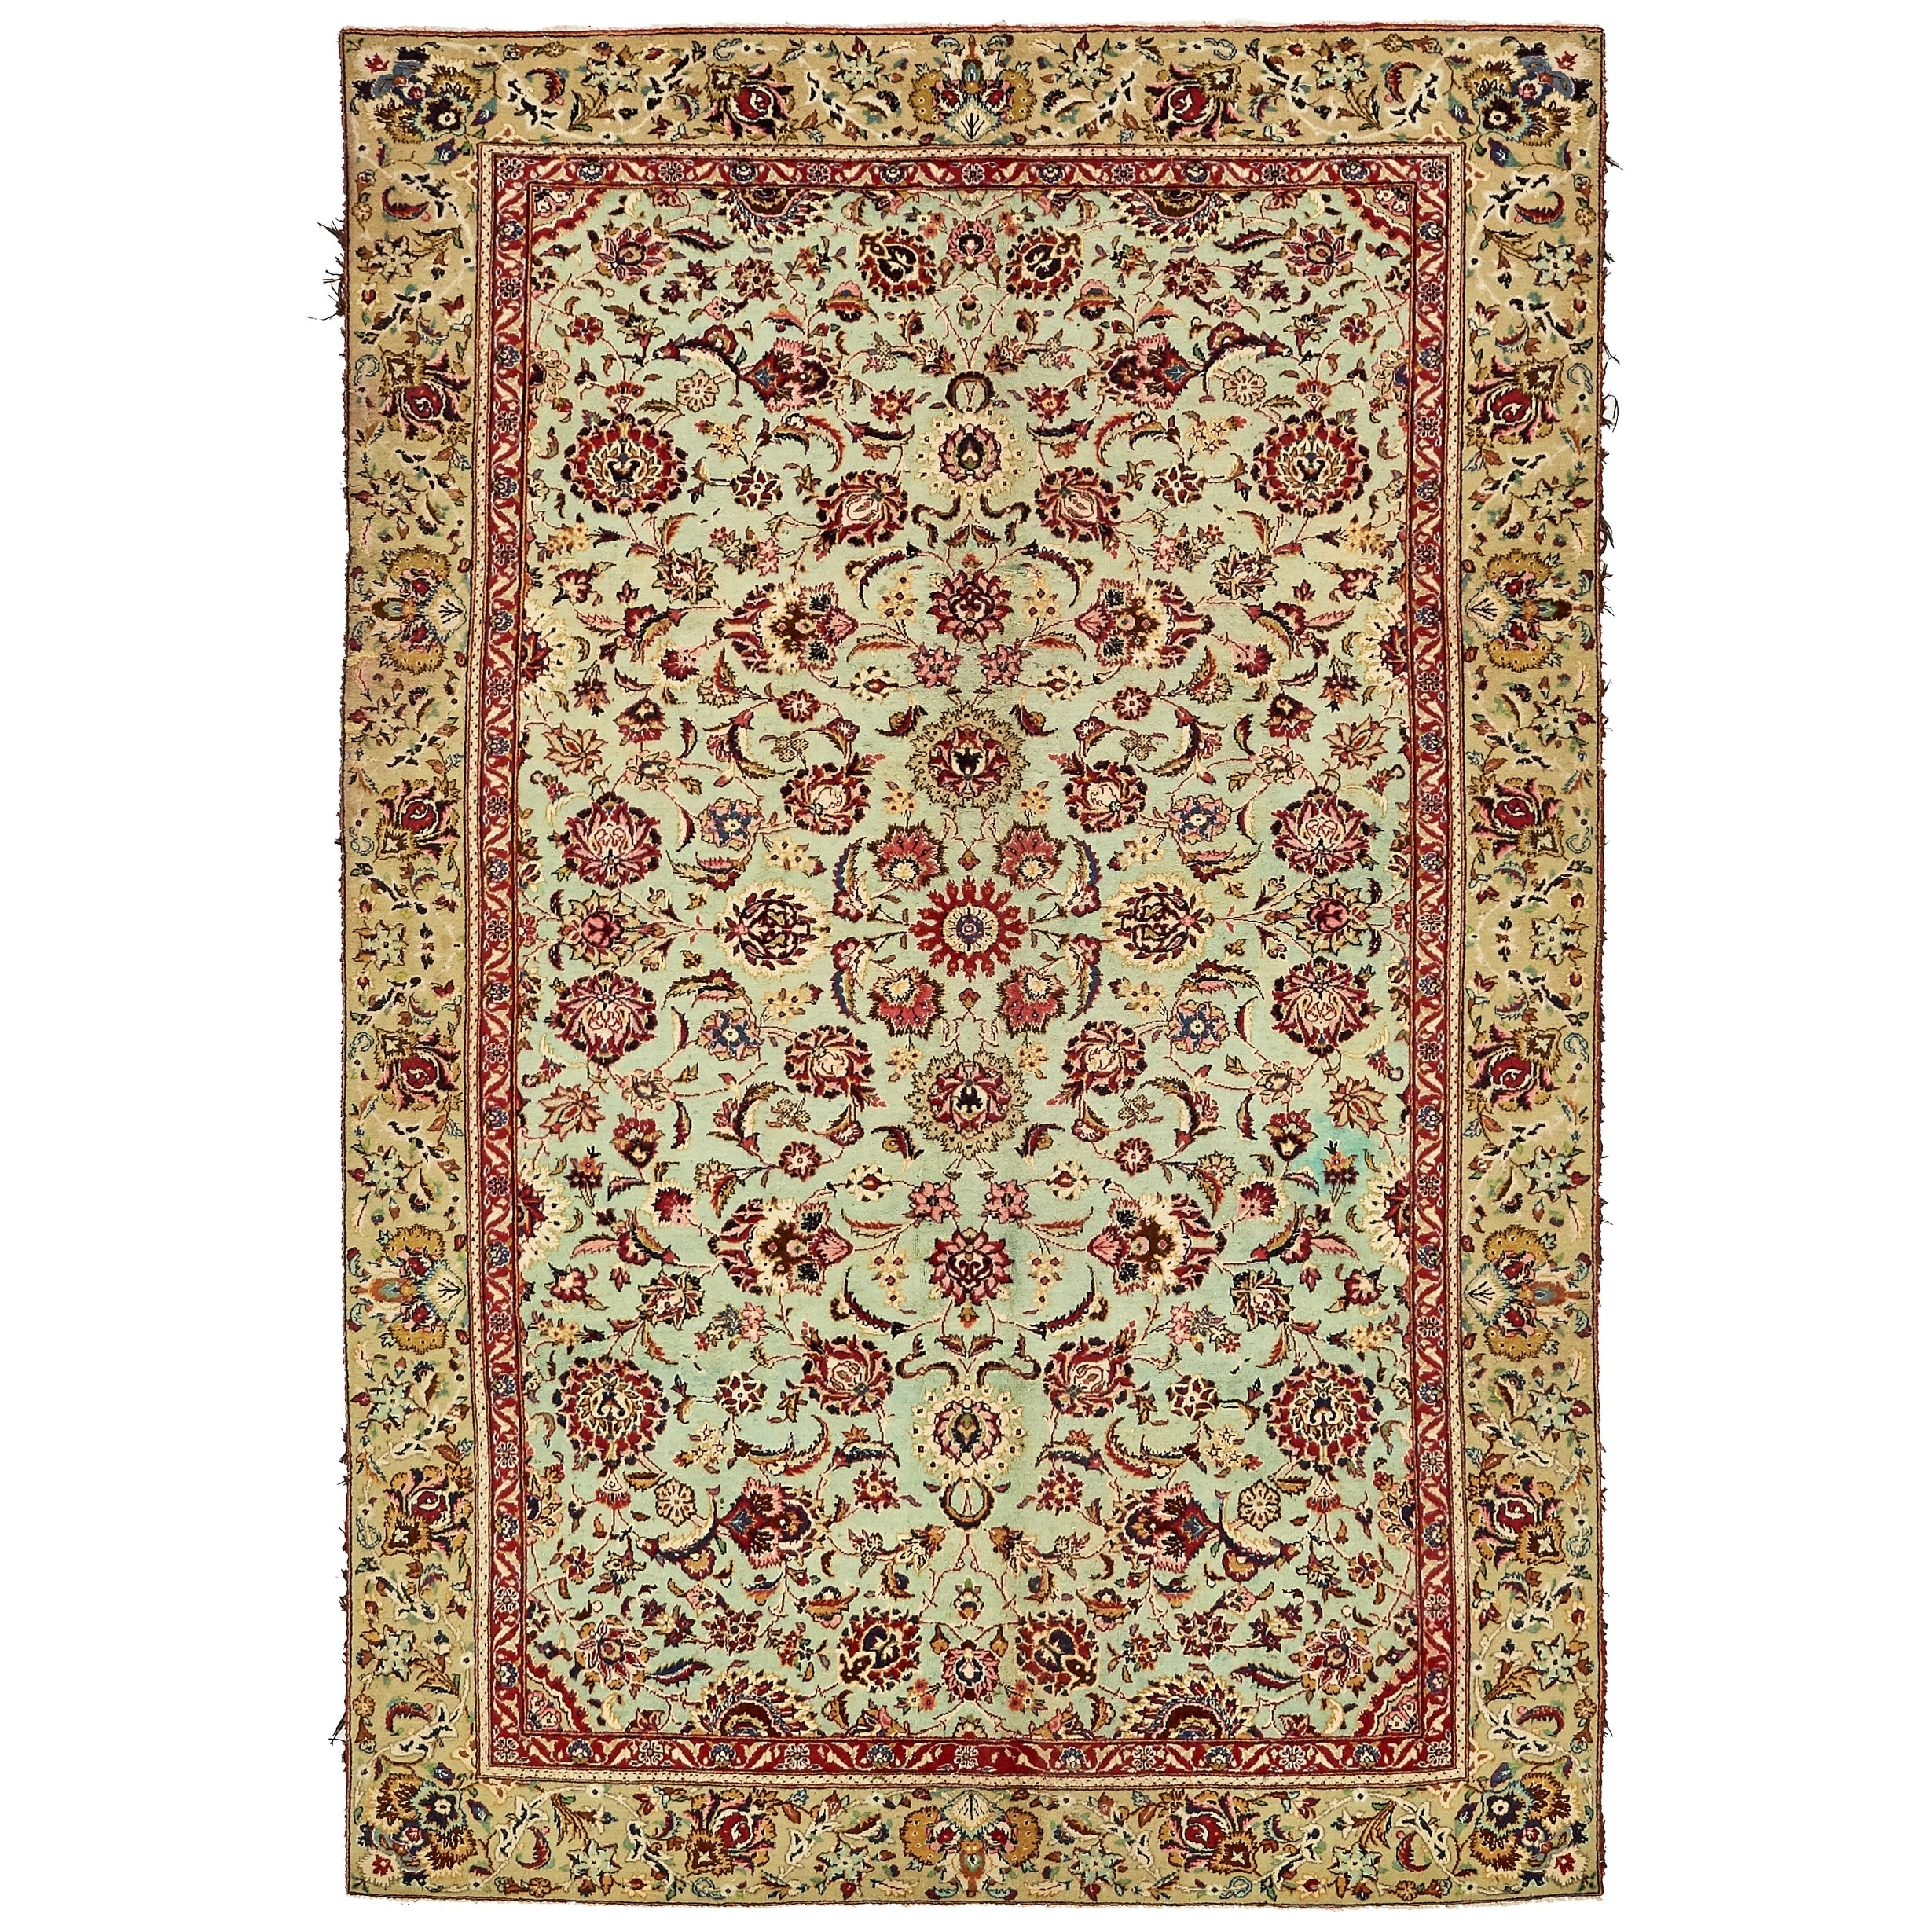 Hand Knotted Kashan Semi Antique Wool Area Rug - 6 5 x 9 7 (Blue - 6 5 x 9 7)